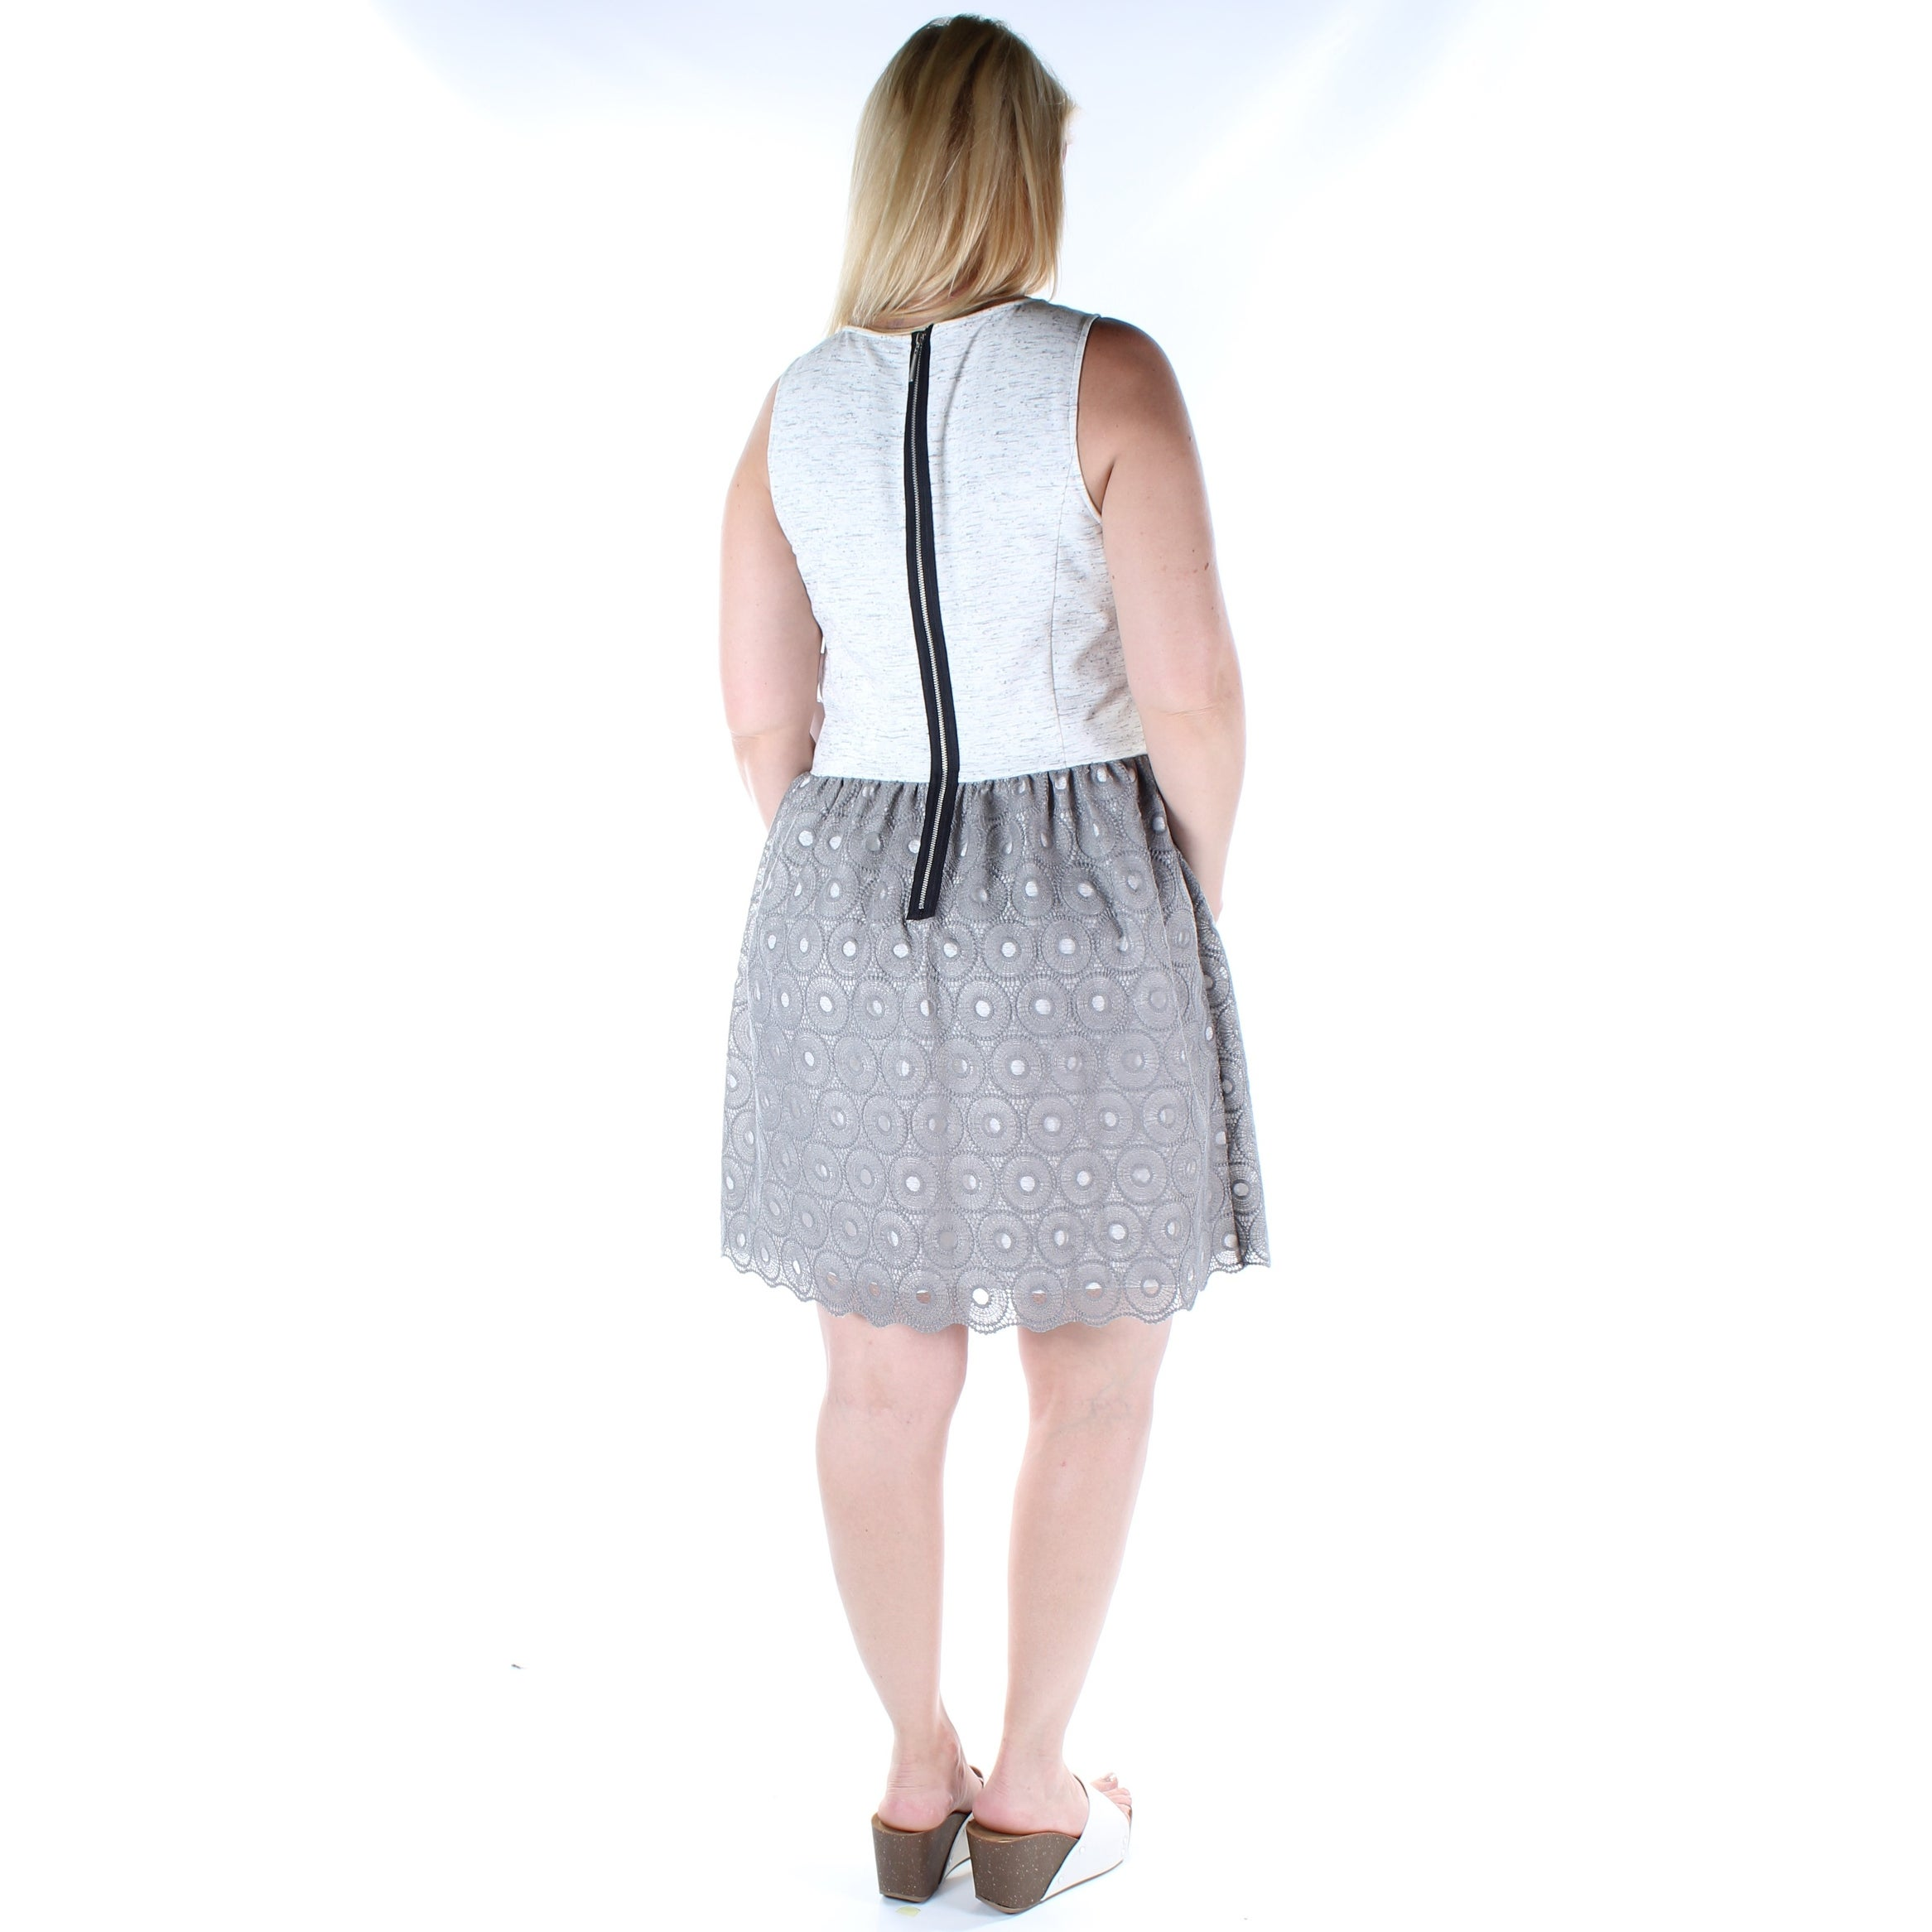 f726f48f3b832 Shop KENSIE Womens Gray Eyelet Sleeveless Jewel Neck Above The Knee Dress  Size  L - On Sale - Free Shipping On Orders Over  45 - Overstock - 21237411